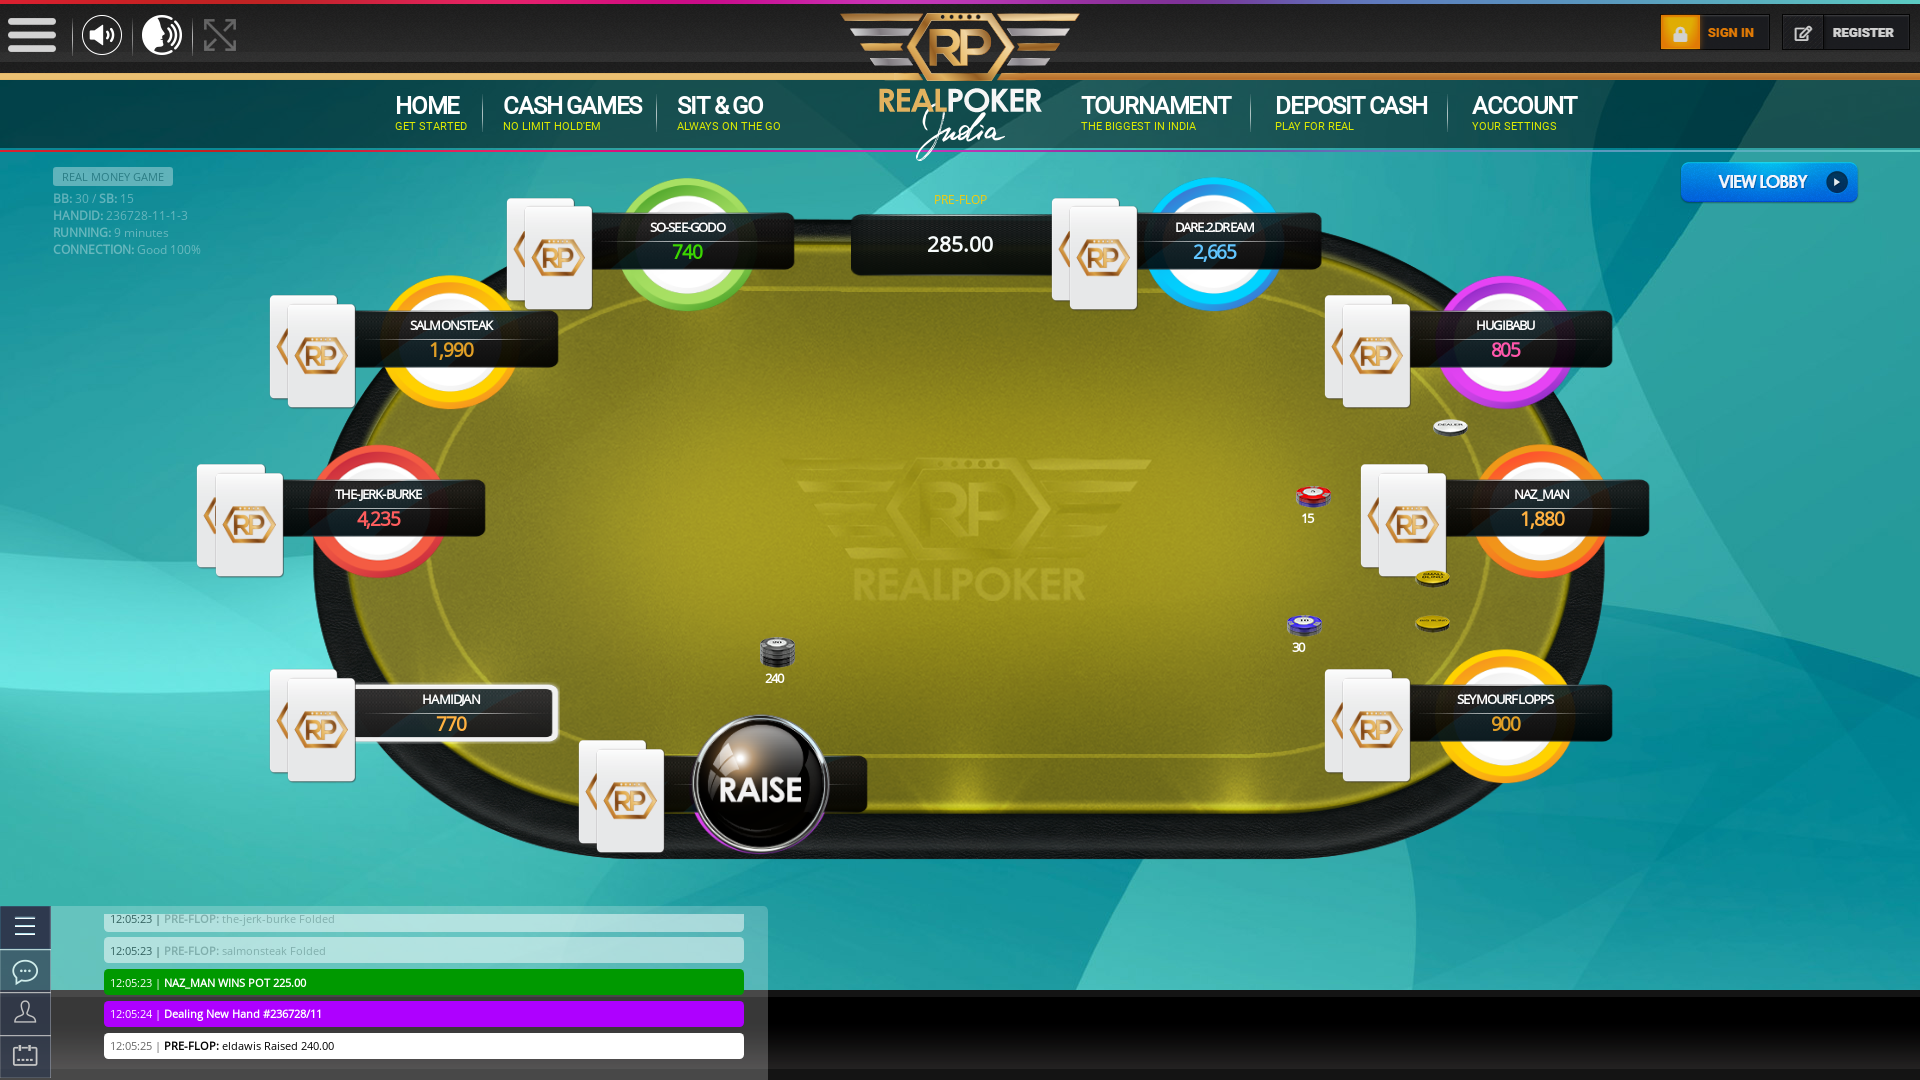 Real poker 10 player table in the 9th minute of the match